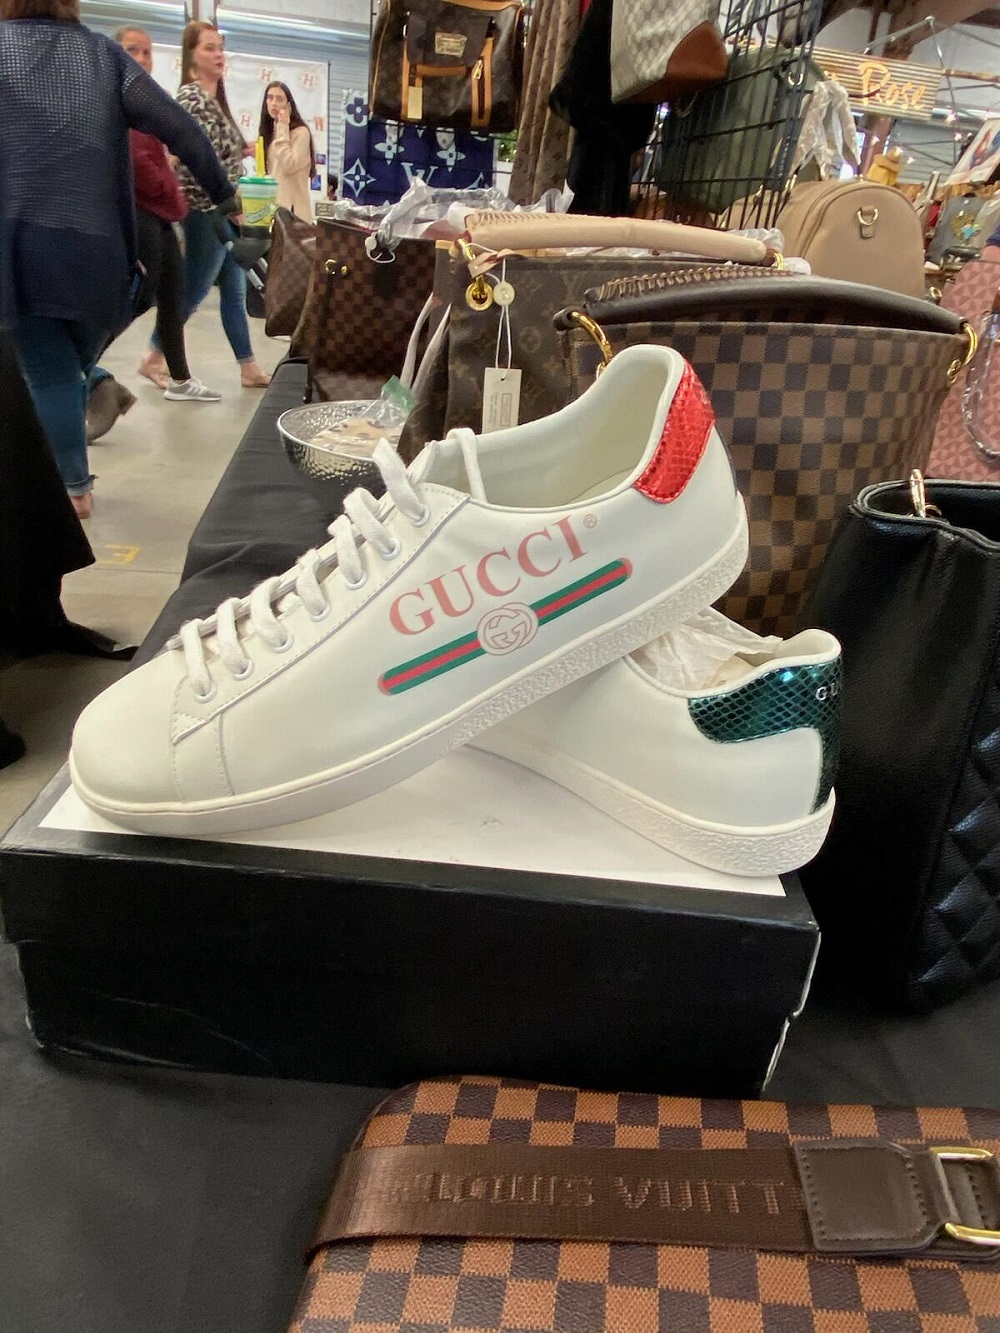 Homeland Security Investigations Dallas special agents seized $1.3 million in counterfeit shoes, bags and goods ripping off Gucci, LV, YSL.